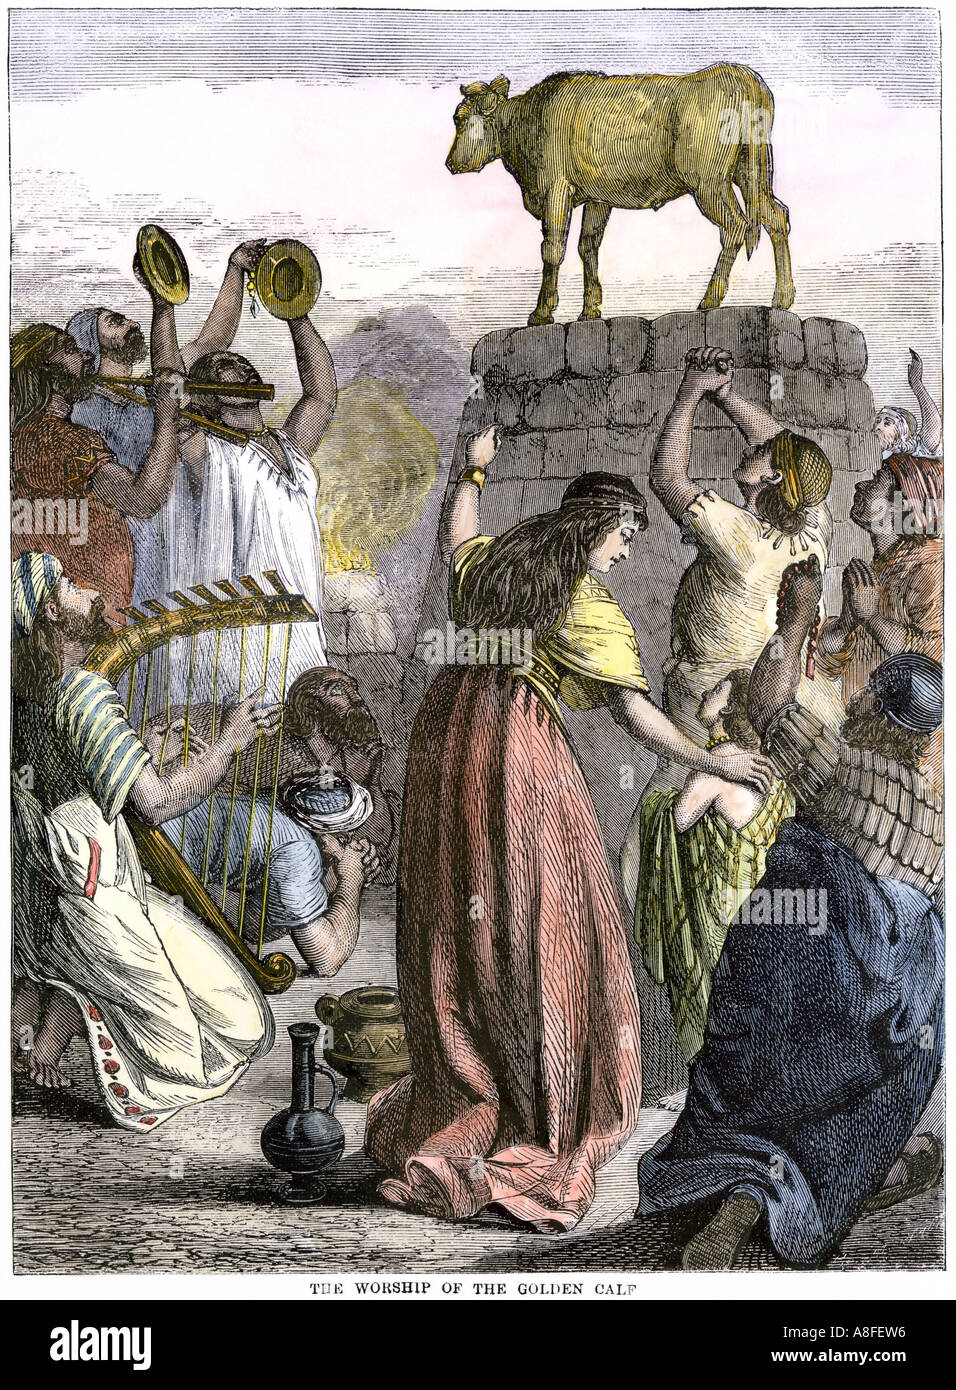 Free coloring page golden calf - Worship Of A Golden Calf By The Israelites In The Time Of Moses Stock Image